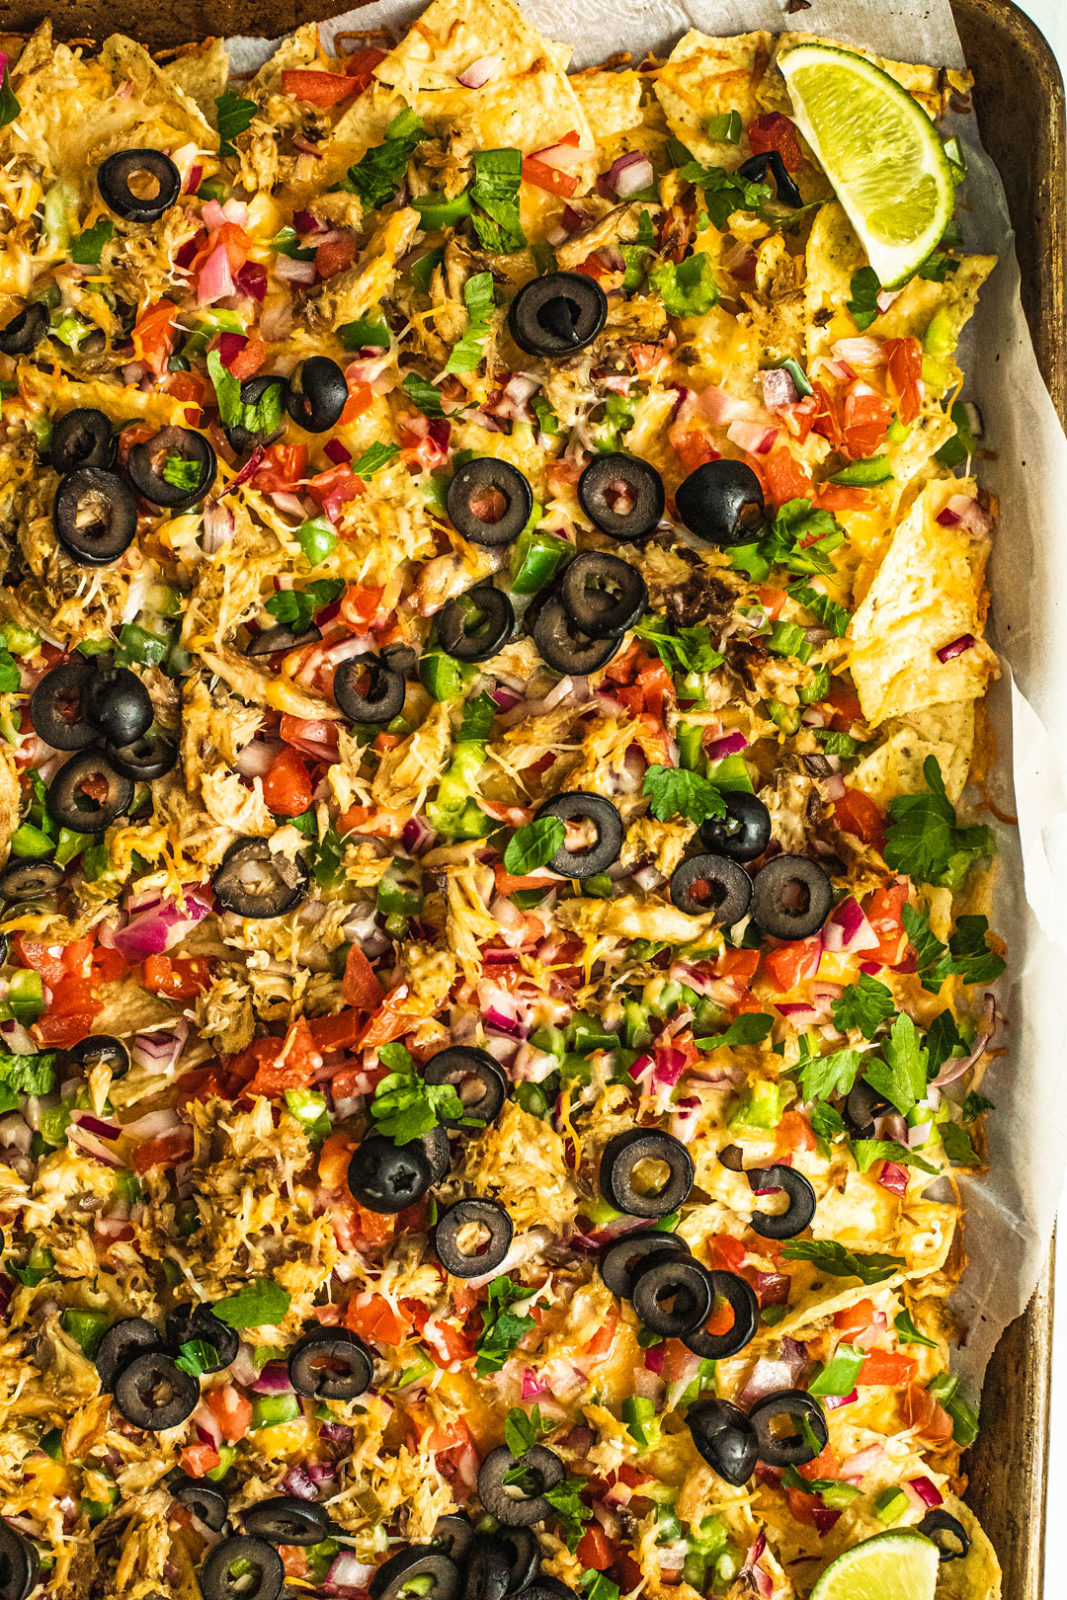 Close up vertical shot of sheet pan full of baked cheesy nachos covered in veggies and mackerel.